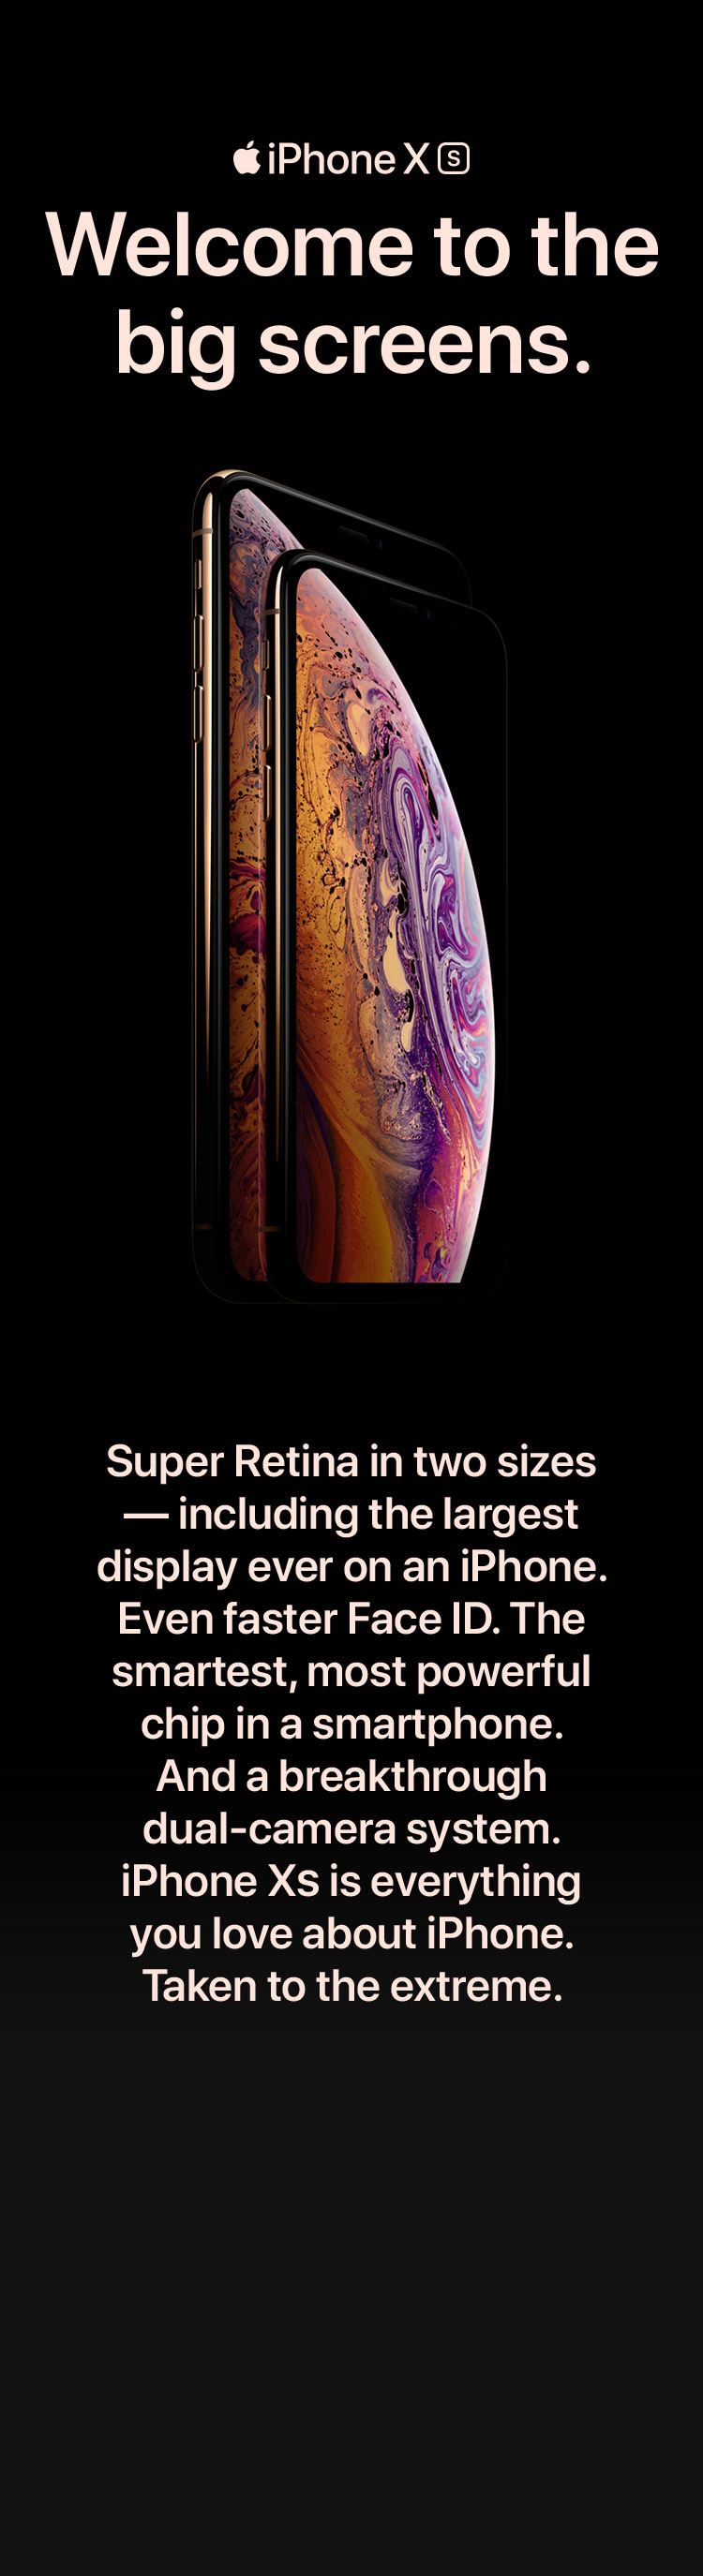 iPhone Xs - Welcome to the big screens